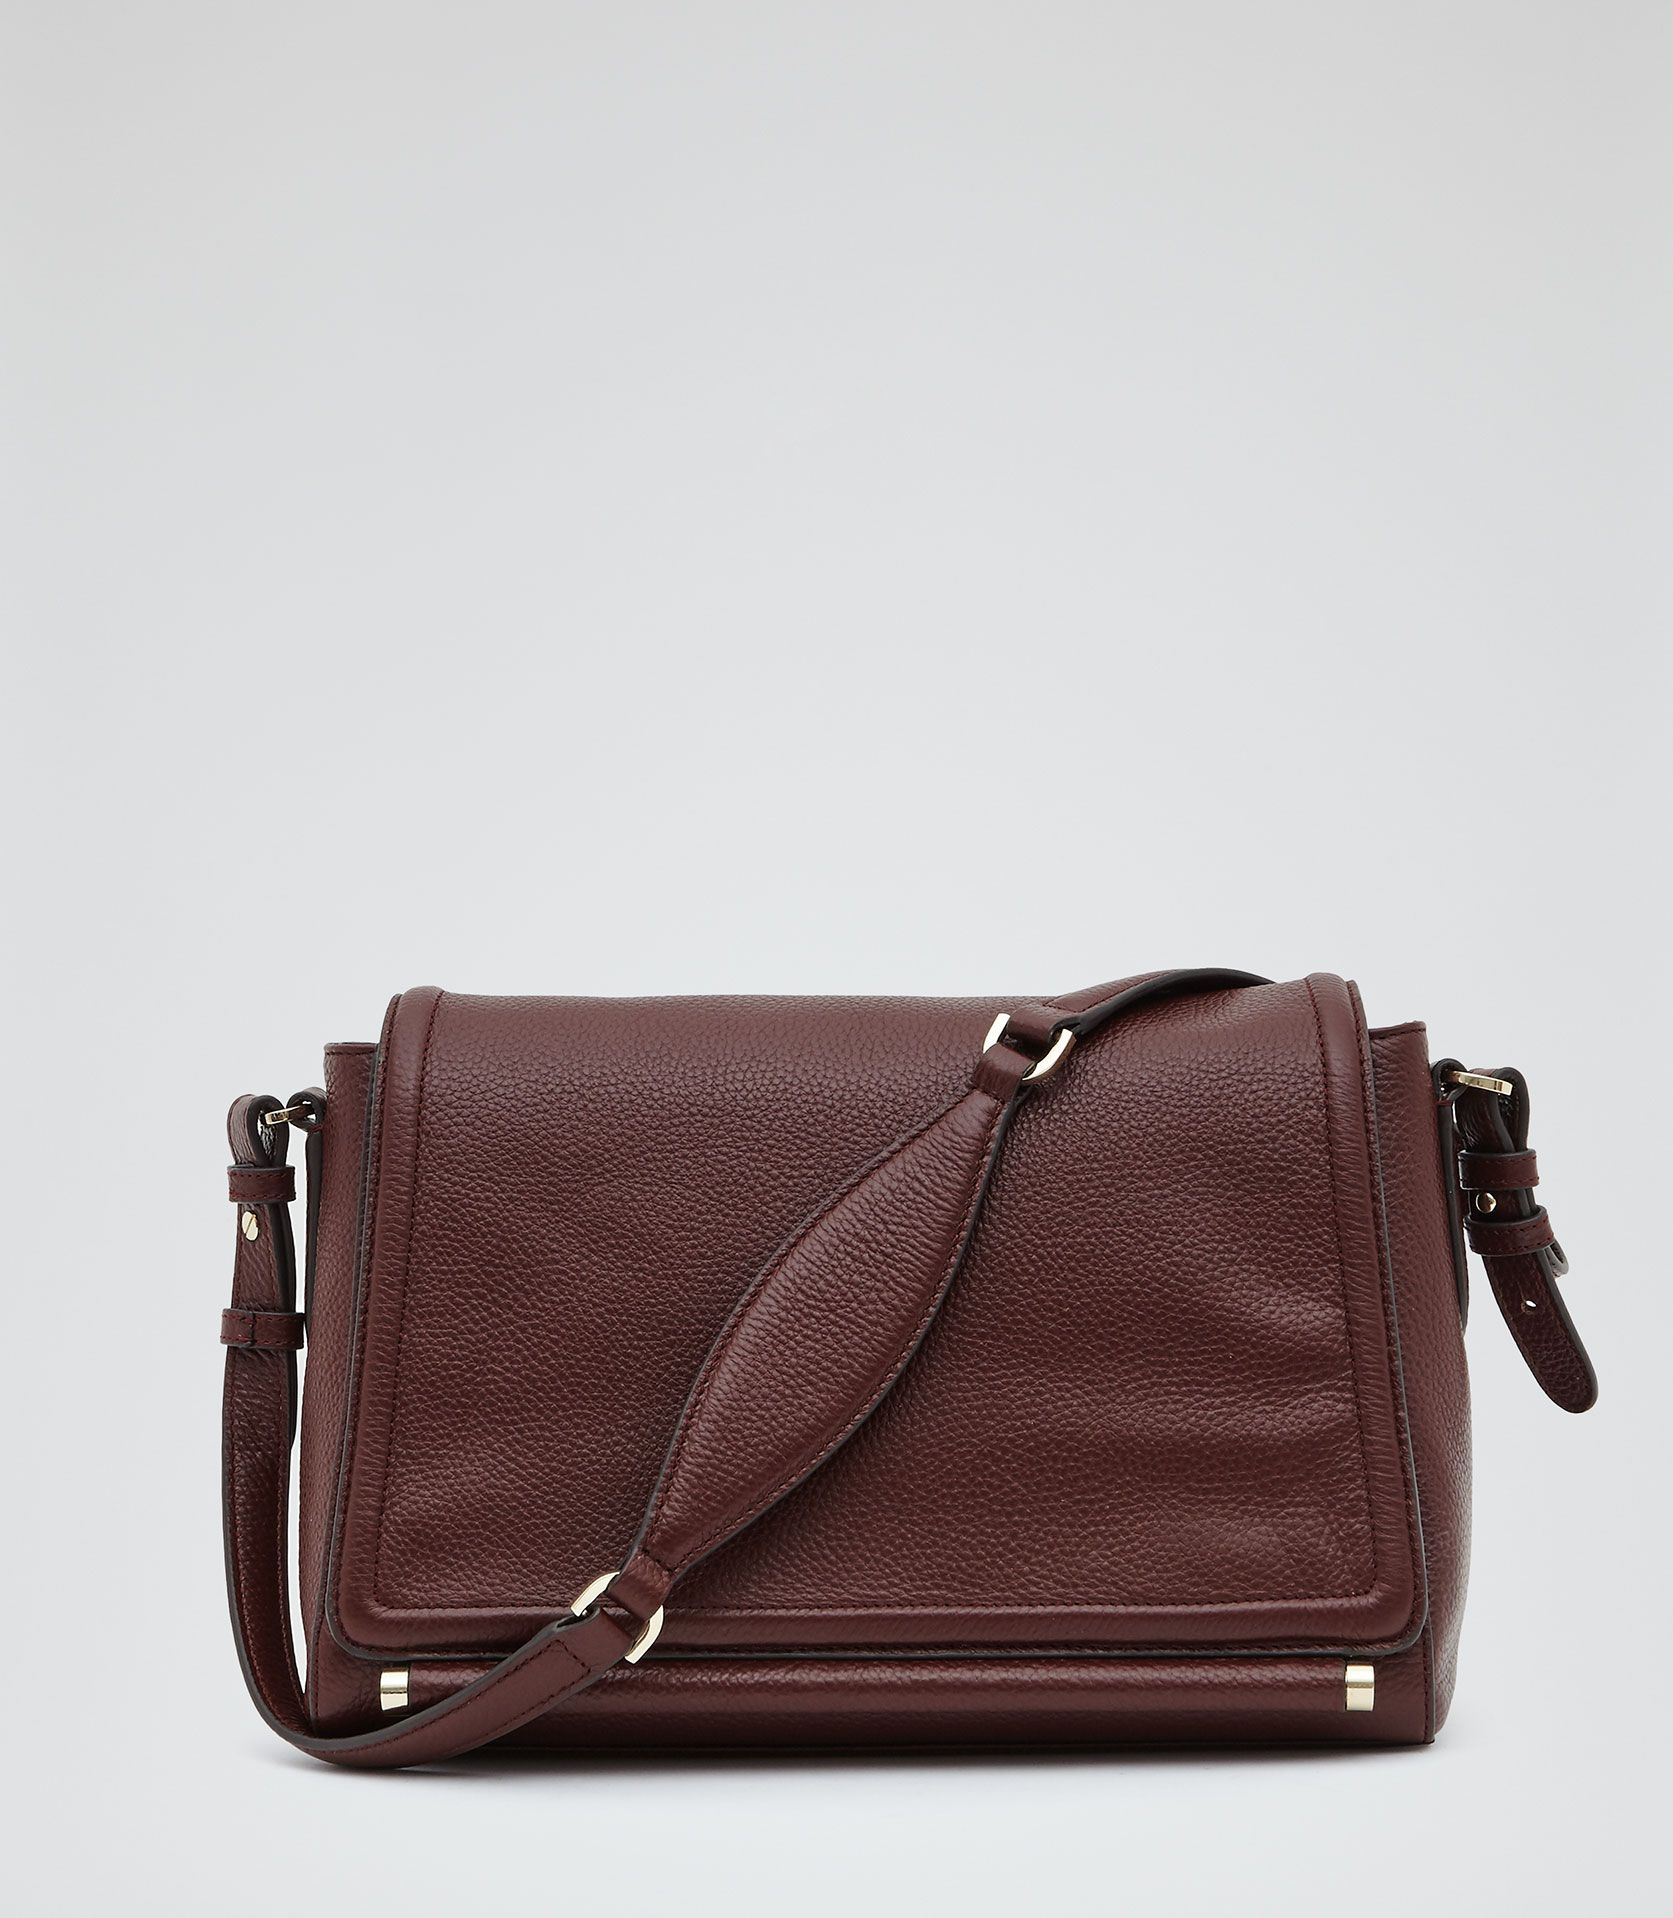 Womens Burgundy Leather Shoulder Bag - Reiss Sahara | Give me more ...